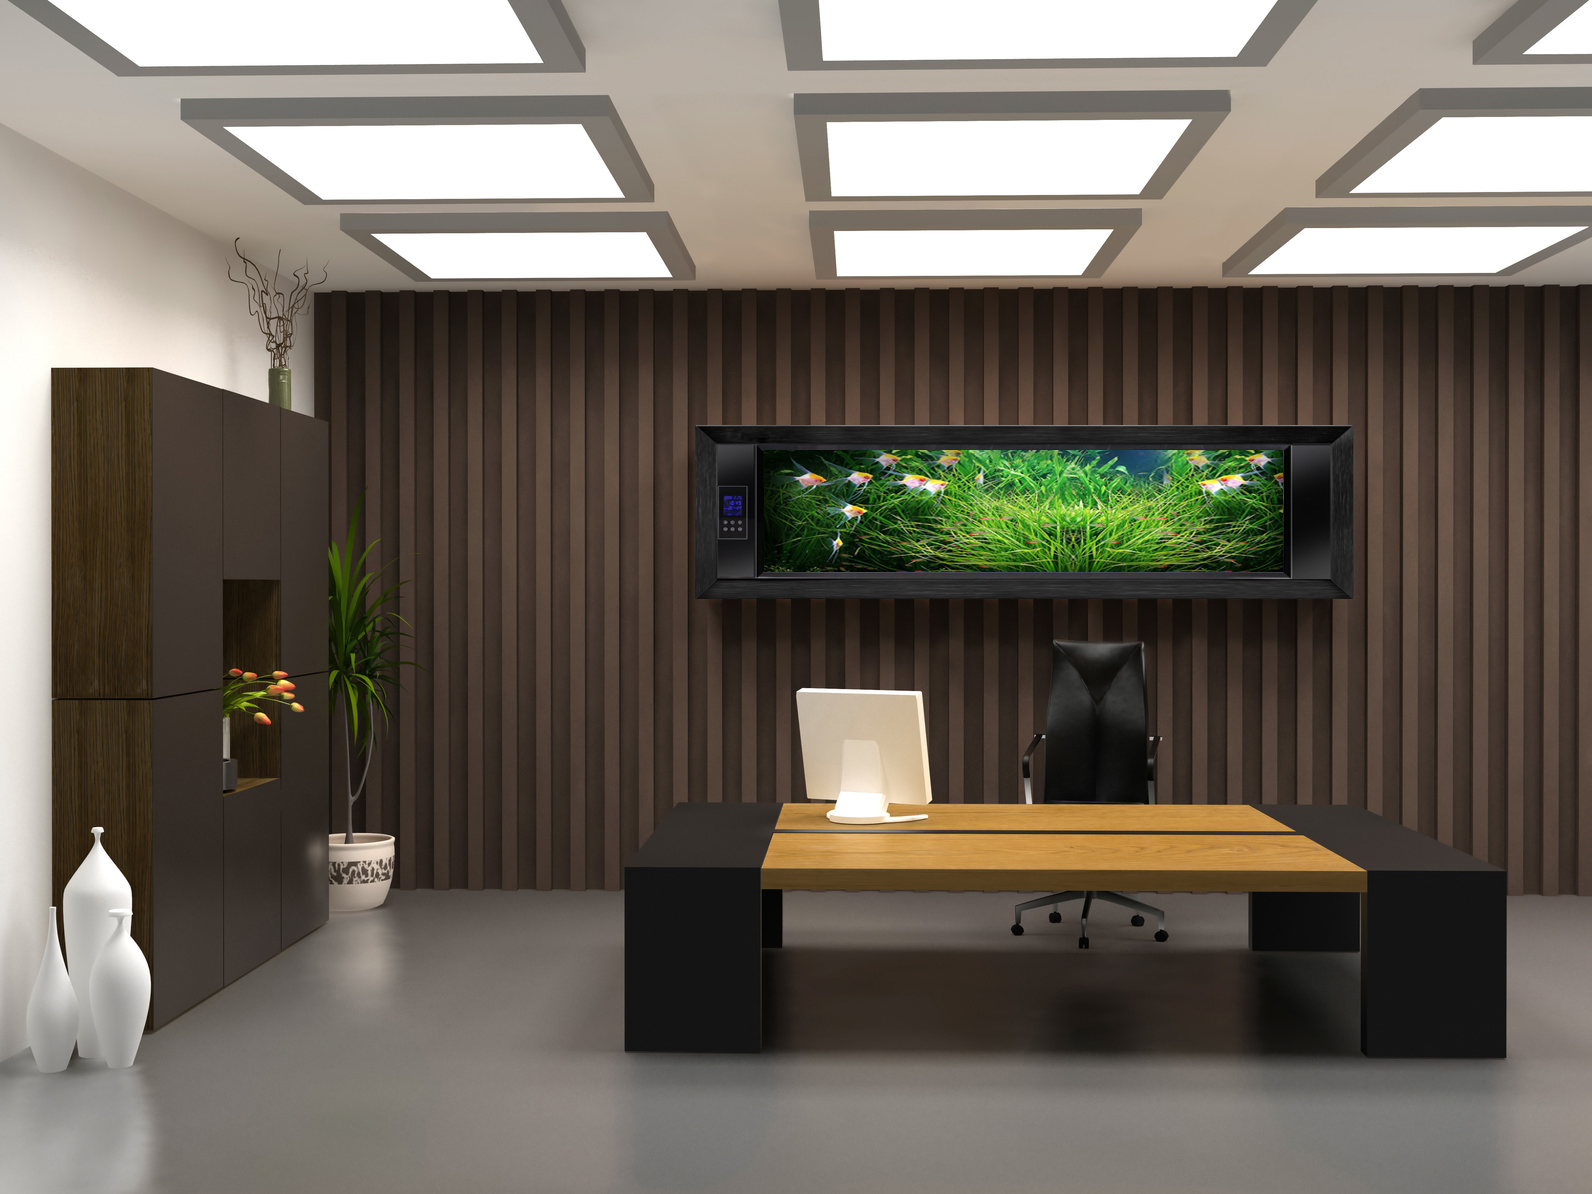 Elegant ceo office design bellisima for Interior designs for offices ideas